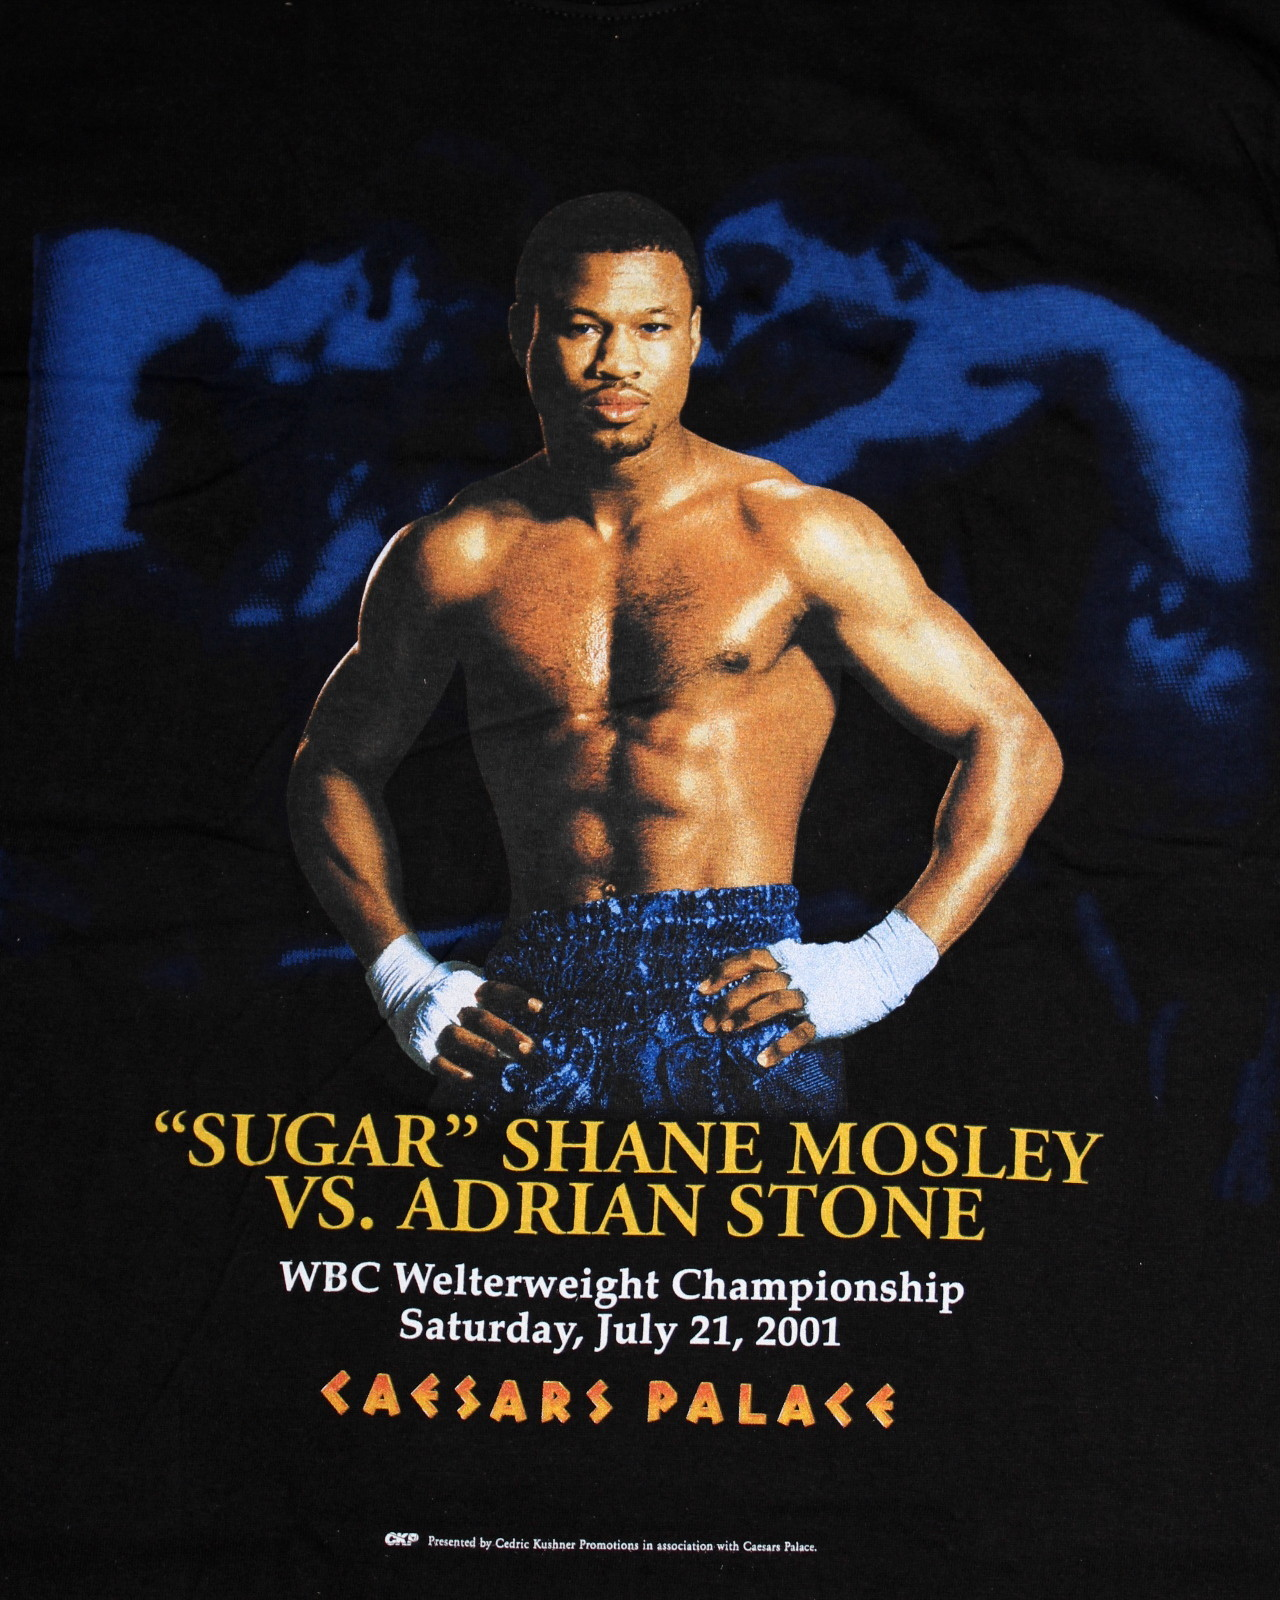 Julio Cesar Chavez furthermore 52031370 further Sugar Mosley vs Cano el 18 5 en Canc n likewise Best Boxers Of All Time From California additionally Pacquiao Mayweatherfight yolasite. on oscar de la hoya vs sugar shane mosley